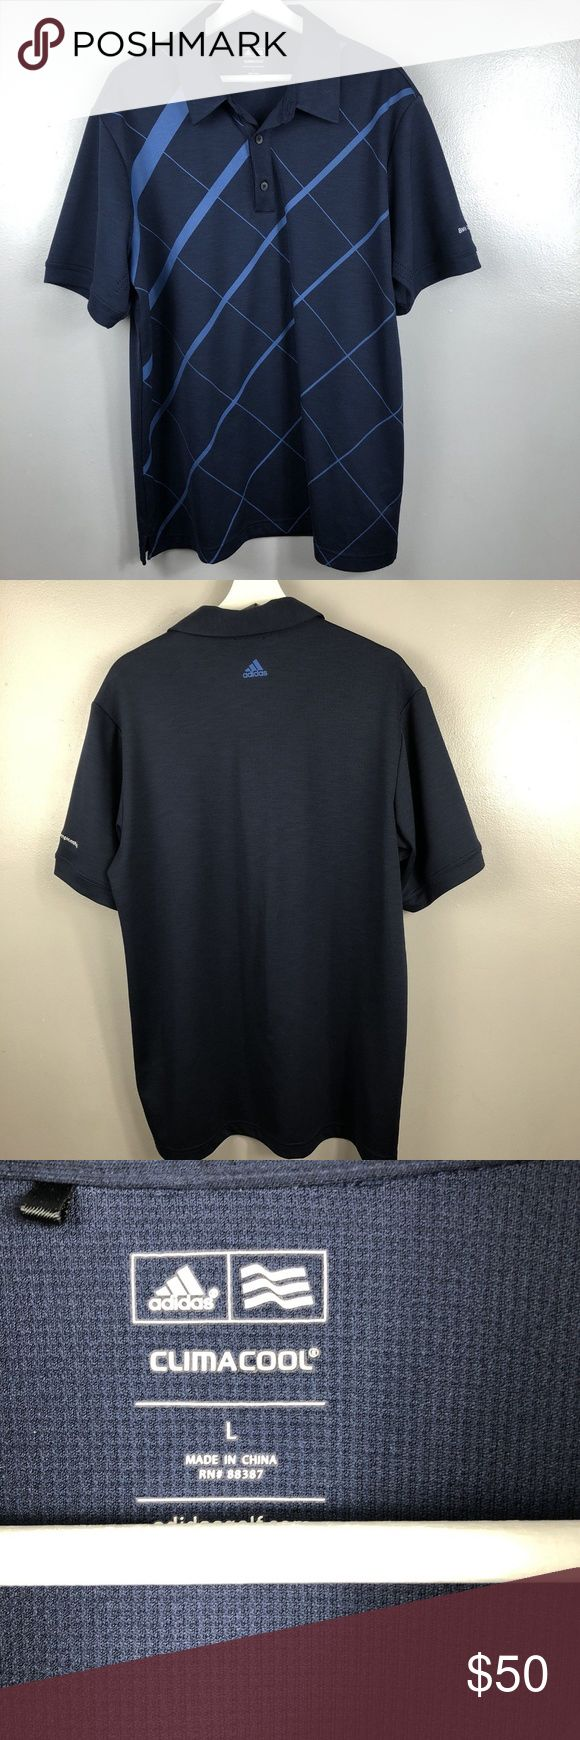 "Adidas Mens L Large BMW Golf polo Shirt Blue Top Adidas Mens L Large BMW  Golf polo Shirt Blue CLIMACOOL Short Sleeve Top  pit to pit 24"" length from shoulder 29""  excellent pre owned condition, no flaws to note adidas Shirts"